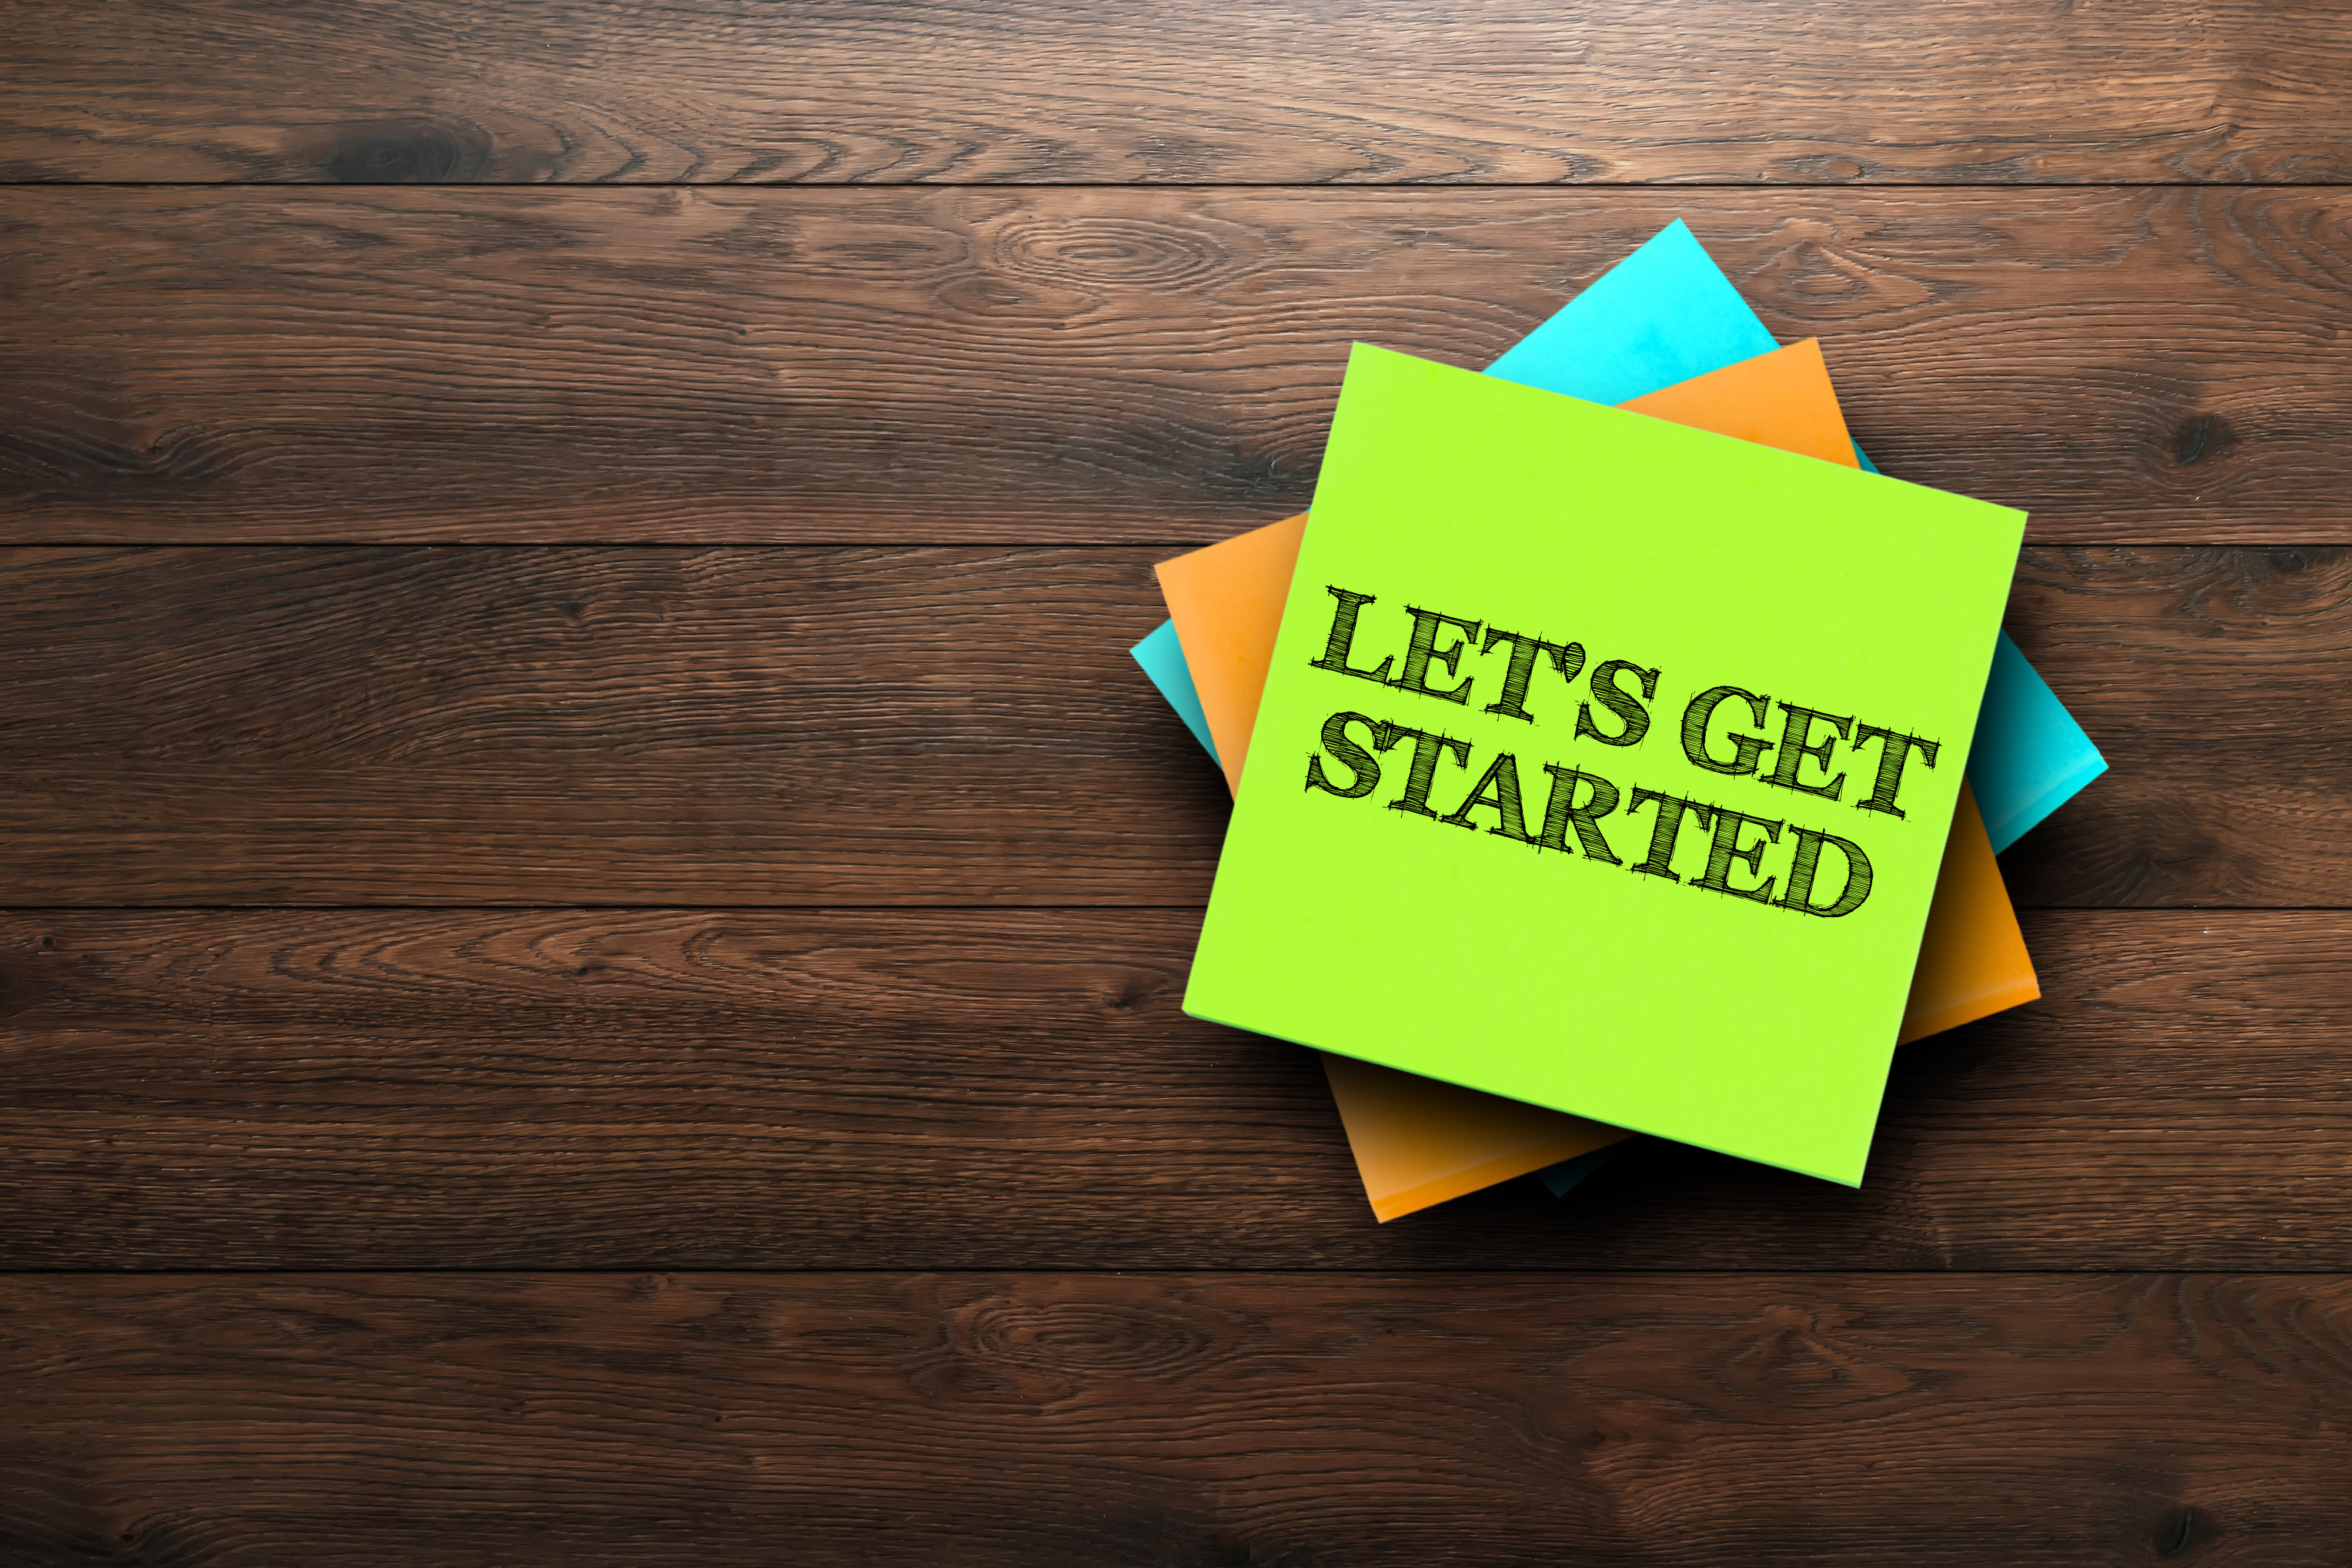 Let's-Get-Started,-the-phrase-is-written-on-multi-colored-stickers,-on-a-brown-wooden-background.-Business-concept,-strategy,-plan,-planning.-956959350_4000x2667